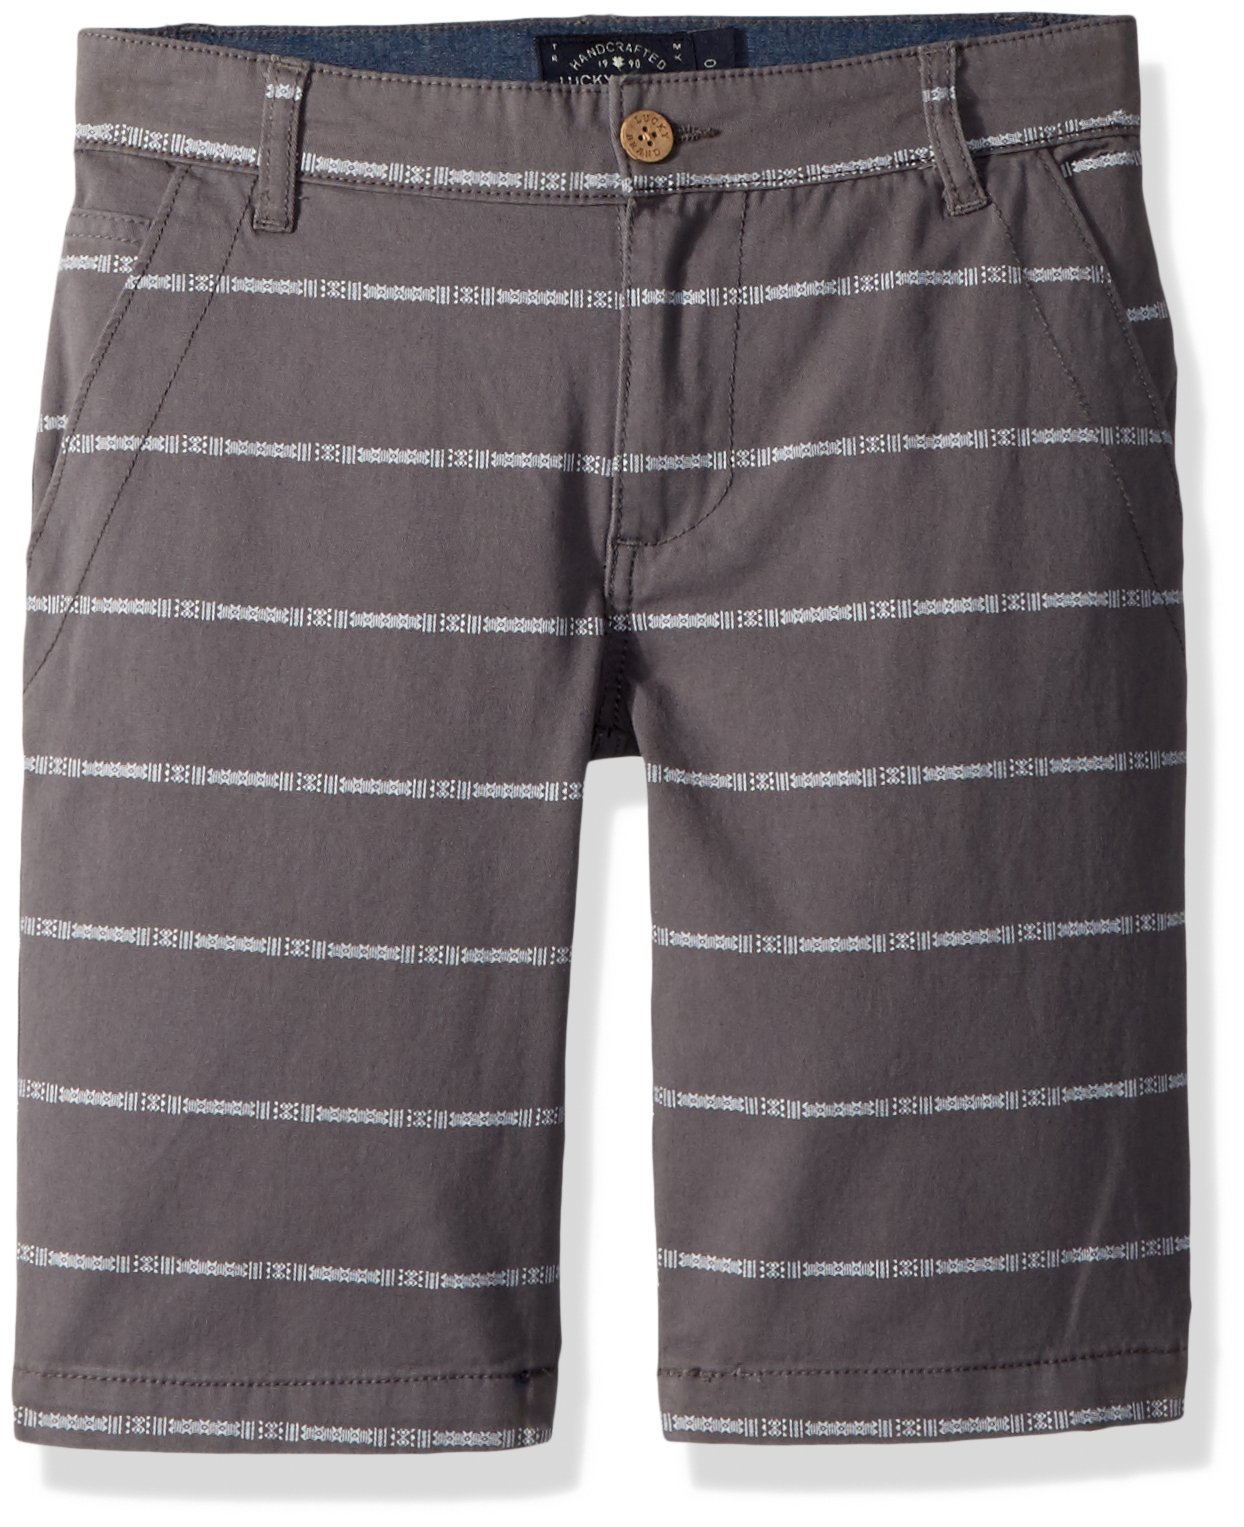 Lucky Brand Toddler Boys' Twill Shorts, As is Grey Mini Stripe, 3T